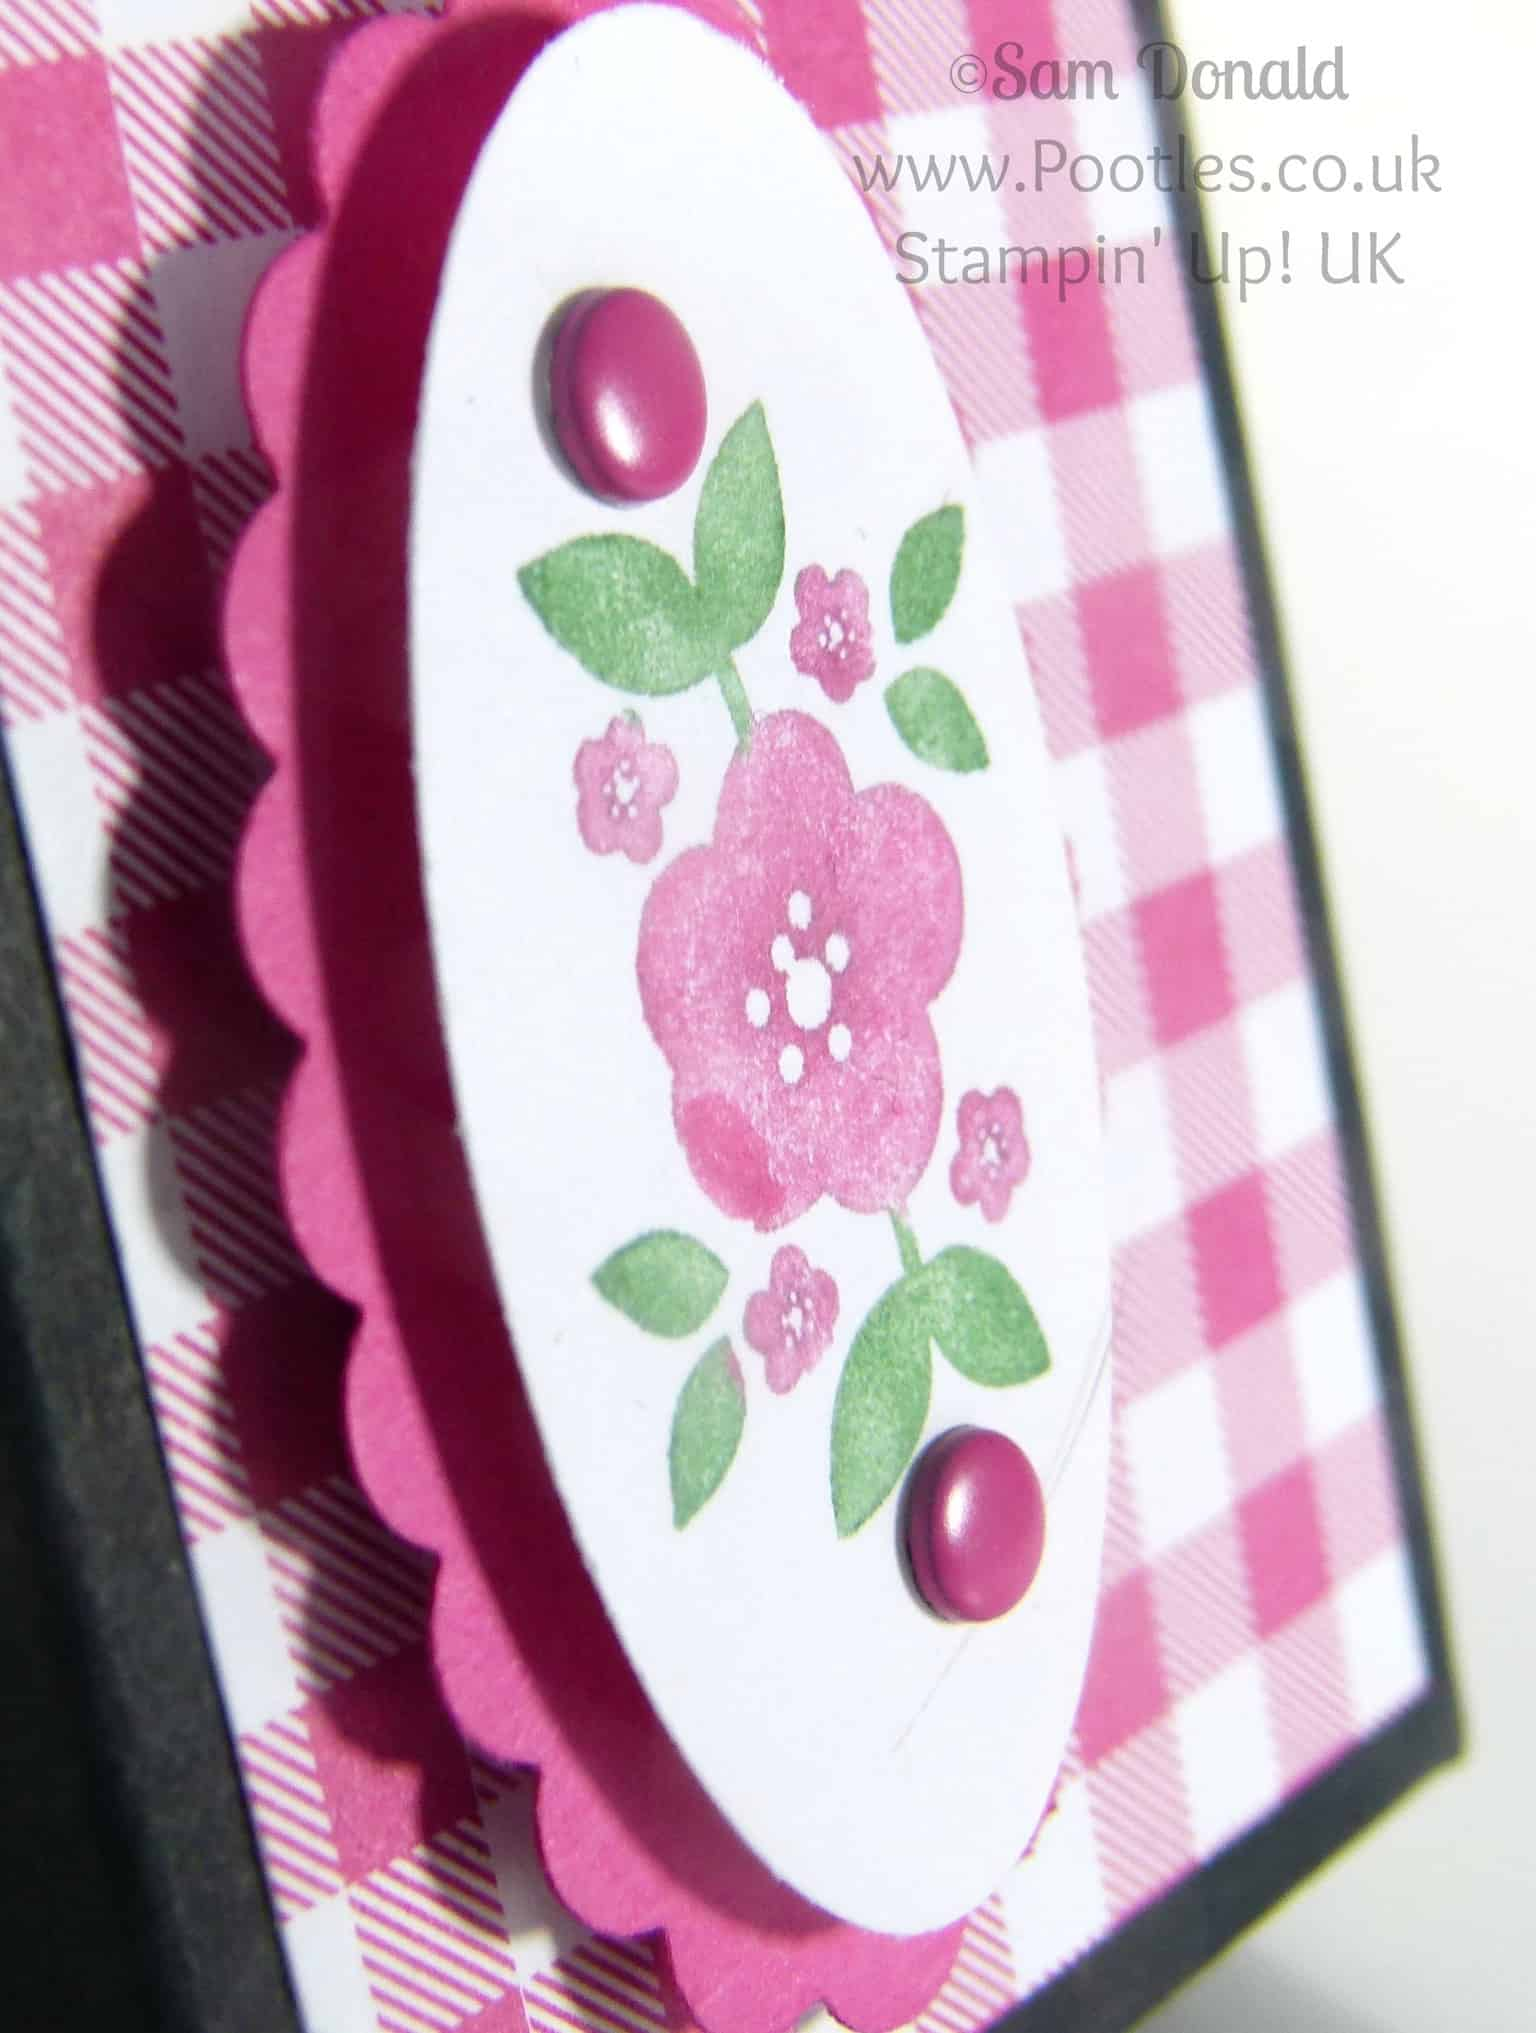 POOTLES Stampin' Up! UK Bright Bold Fold Flat Box Tutorial close up